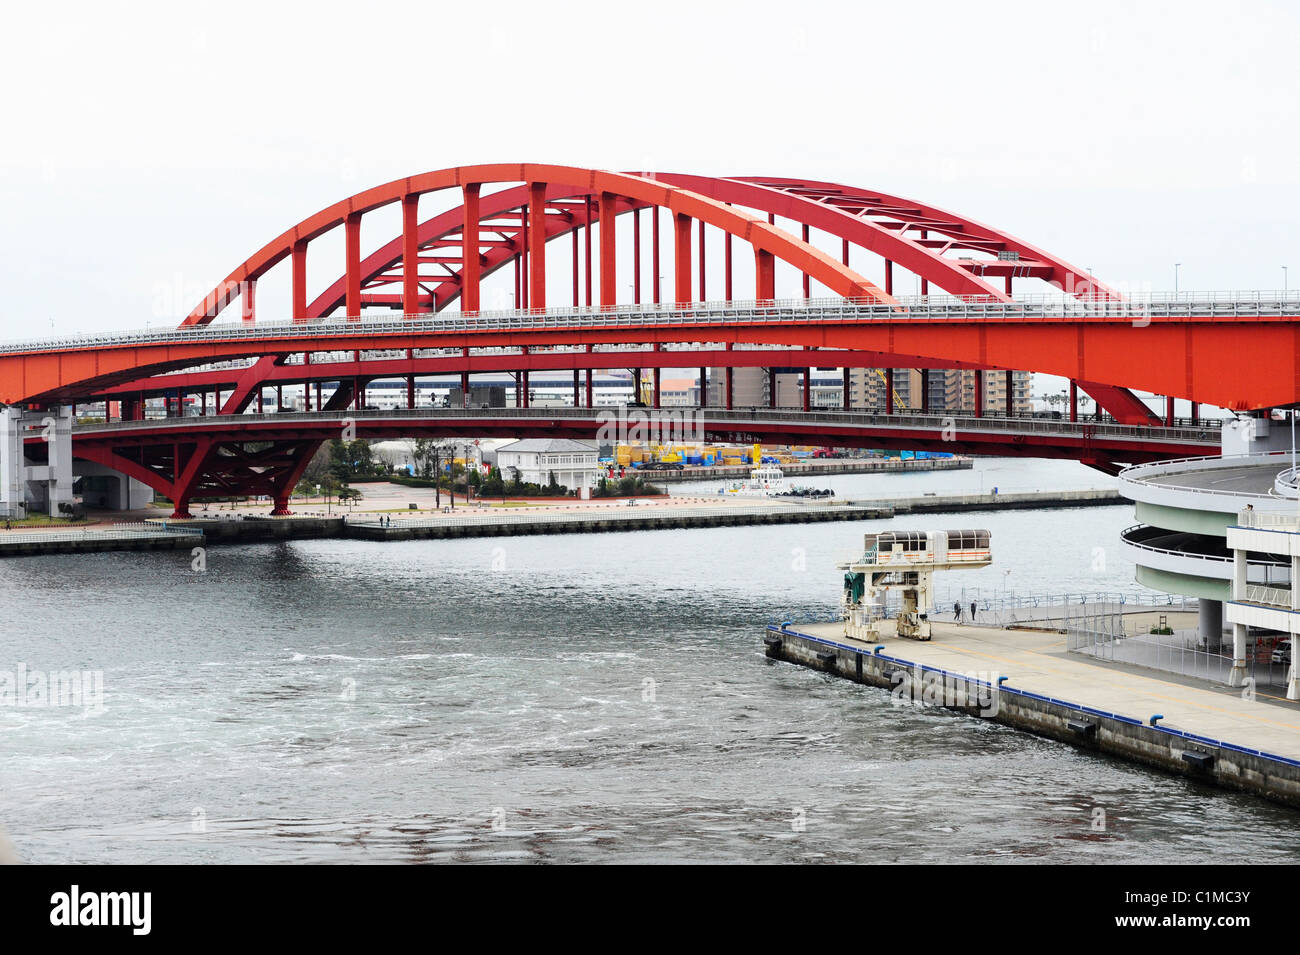 Bridge at the Port of Kobe, Japan - Stock Image